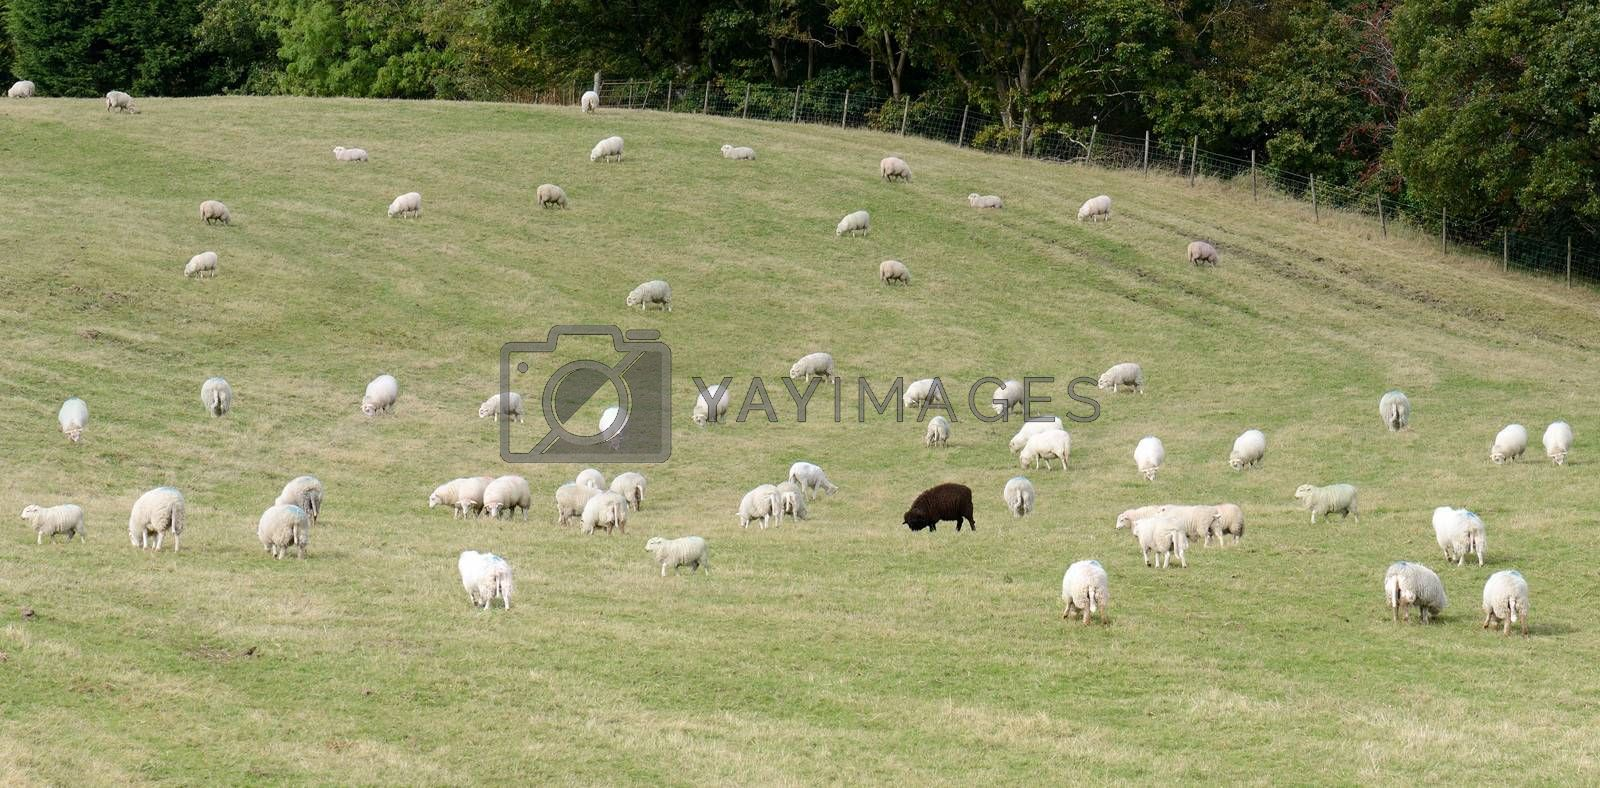 On black sheep in a field of white sheep concept of standing out in a crowd